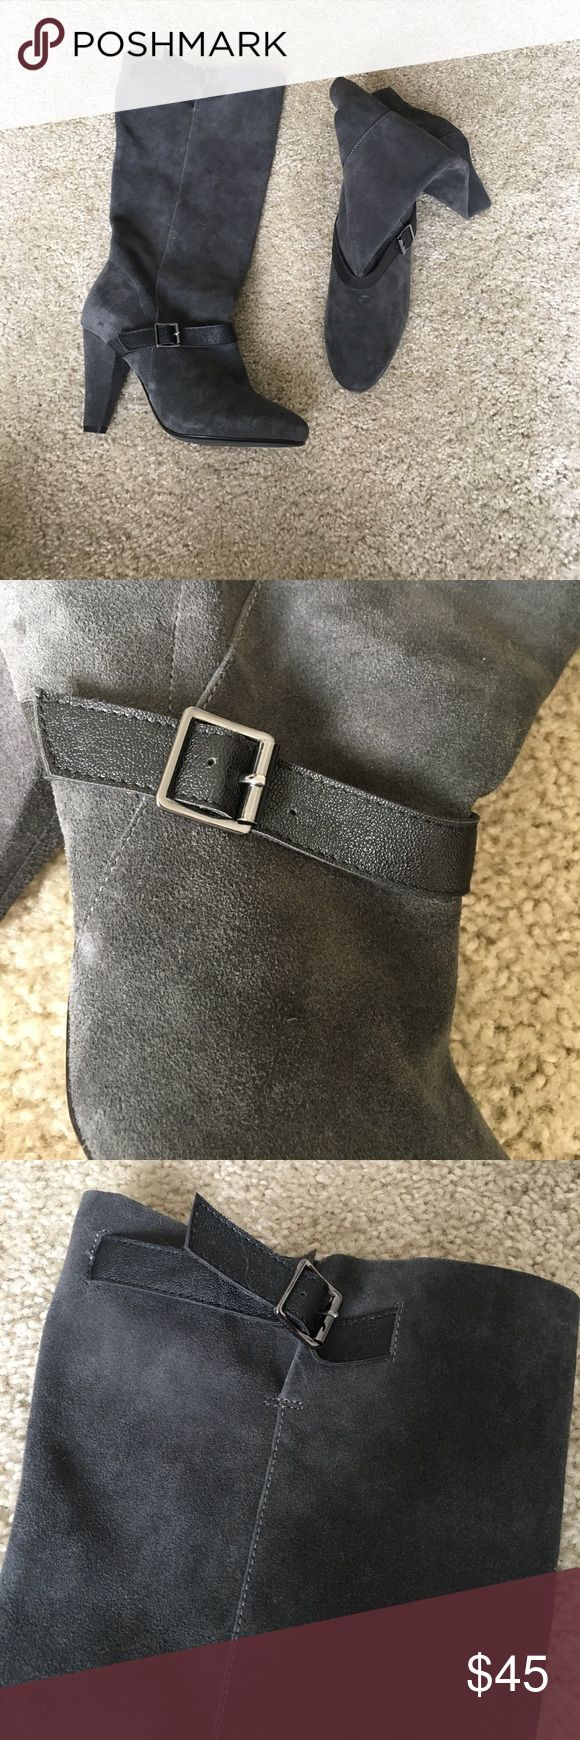 Gray suede slouchy boot Size 8, 3 inch heel. These boots have never been worn outside, great condition. The suede boots have a slouchy fit and fit right on the calf, they do not go all the way up to the knee. There are two buckle details right below the ankle and then right at the top of the boot. I purchased these at Victoria's Secret online boutique when they regularly sold clothes and shoes Shoes Heeled Boots